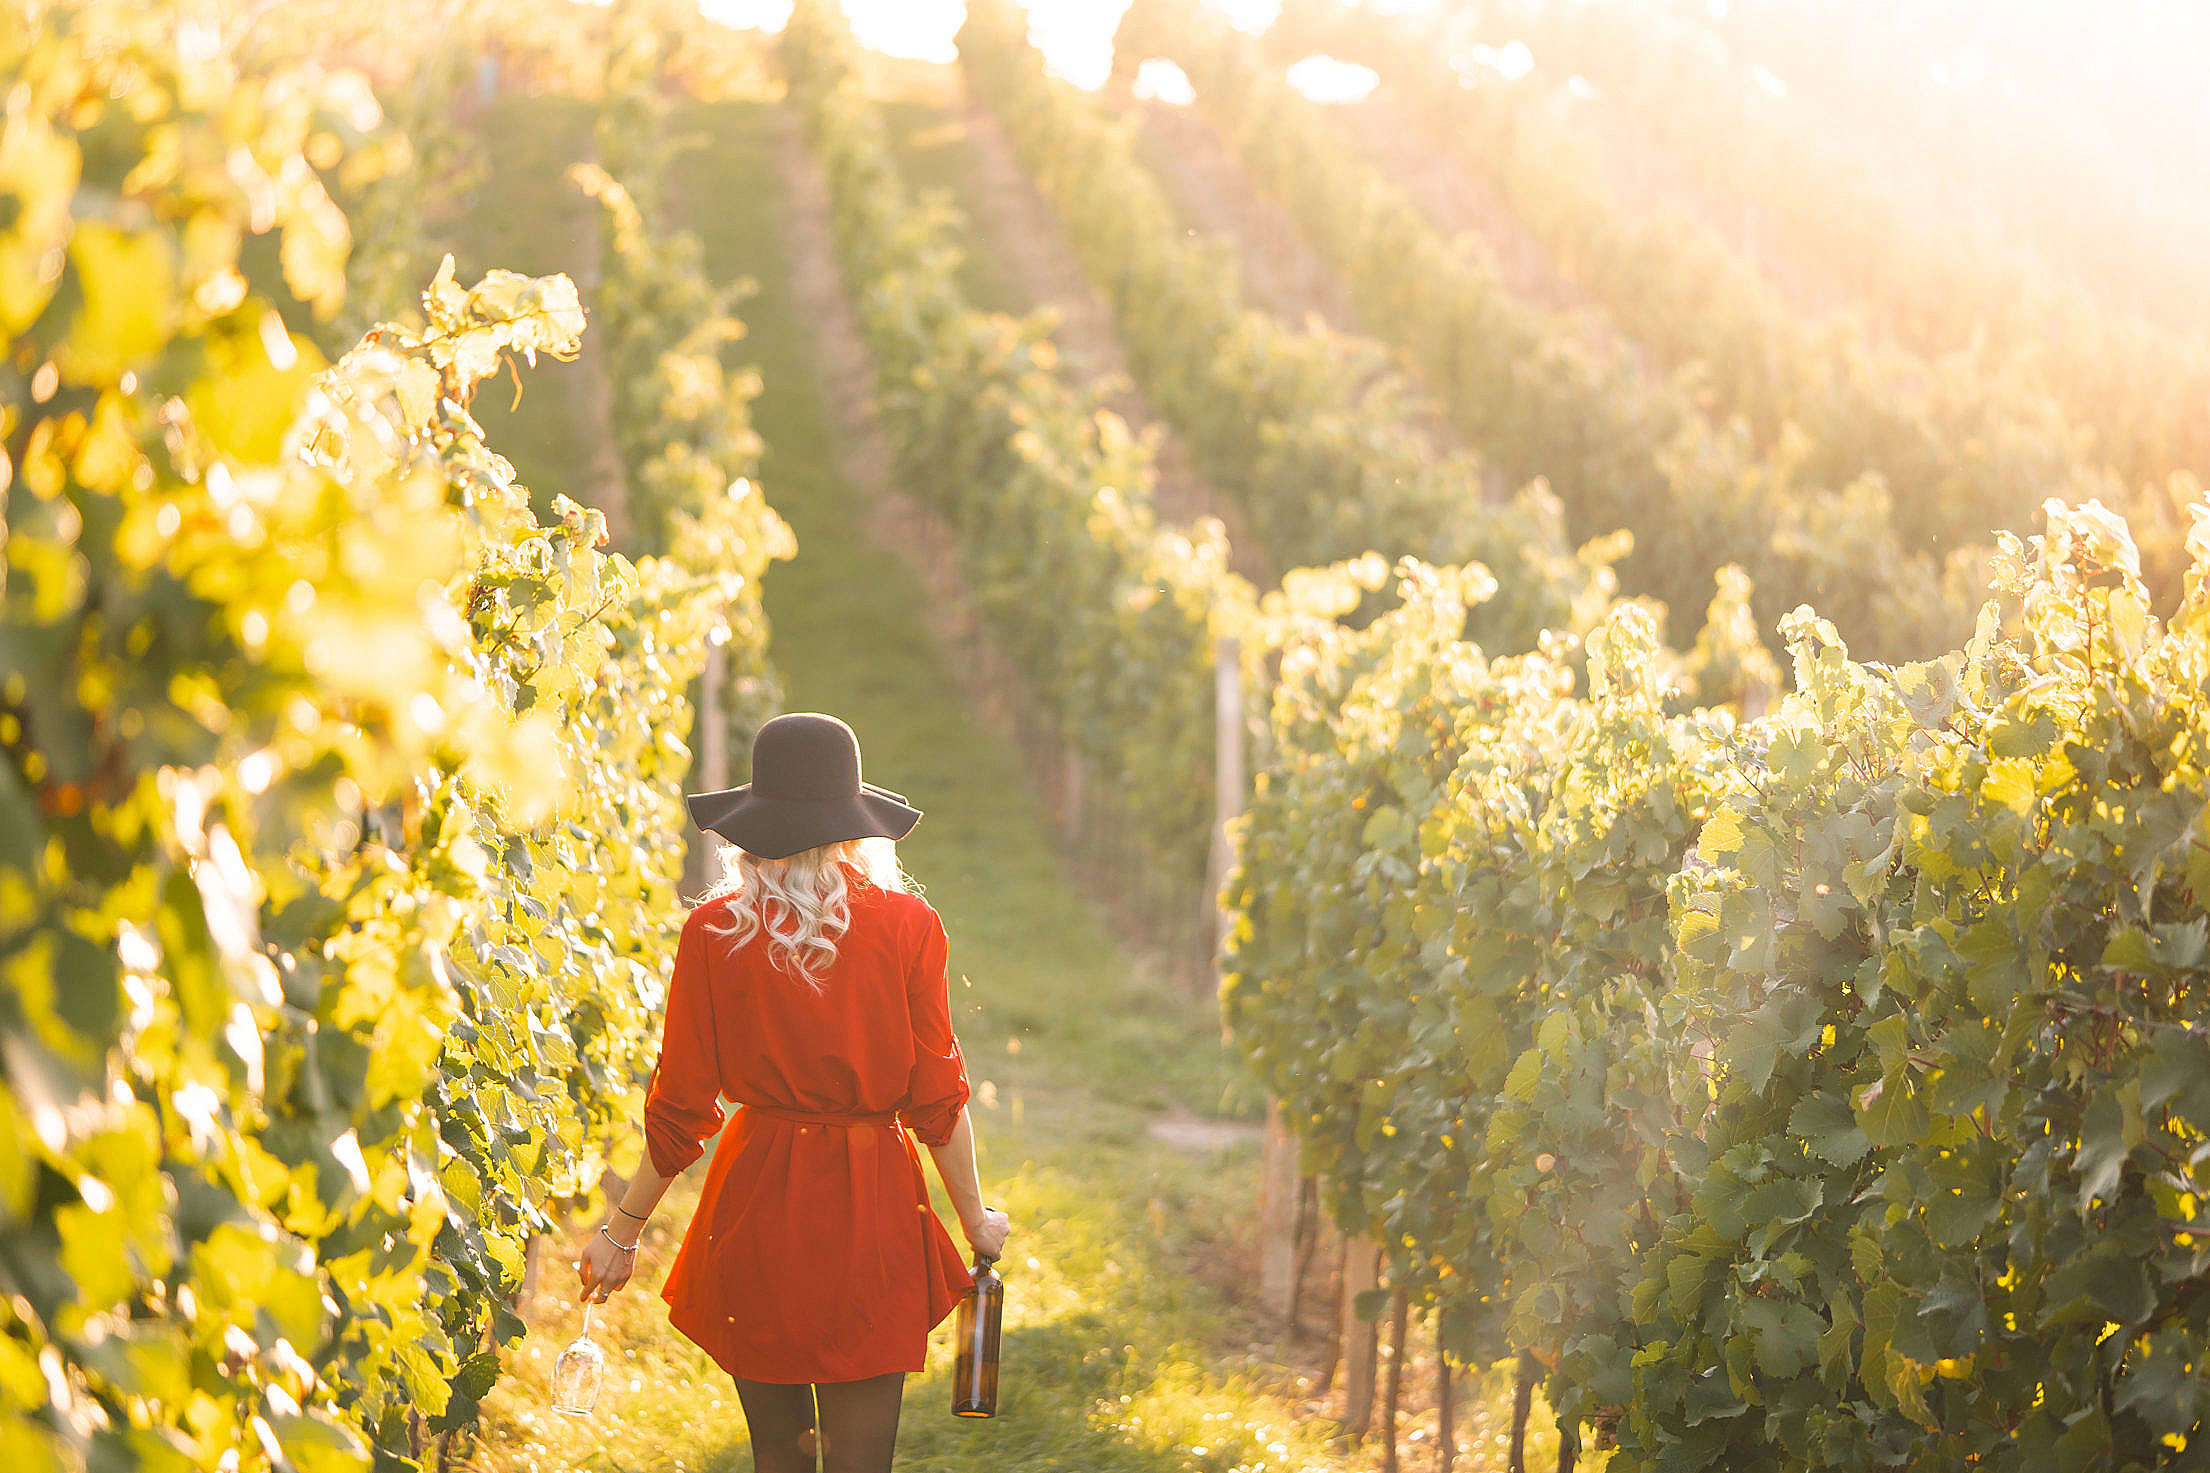 Woman in a Red Dress Holding a Glass of Wine in The Vineyard Free Stock Photo